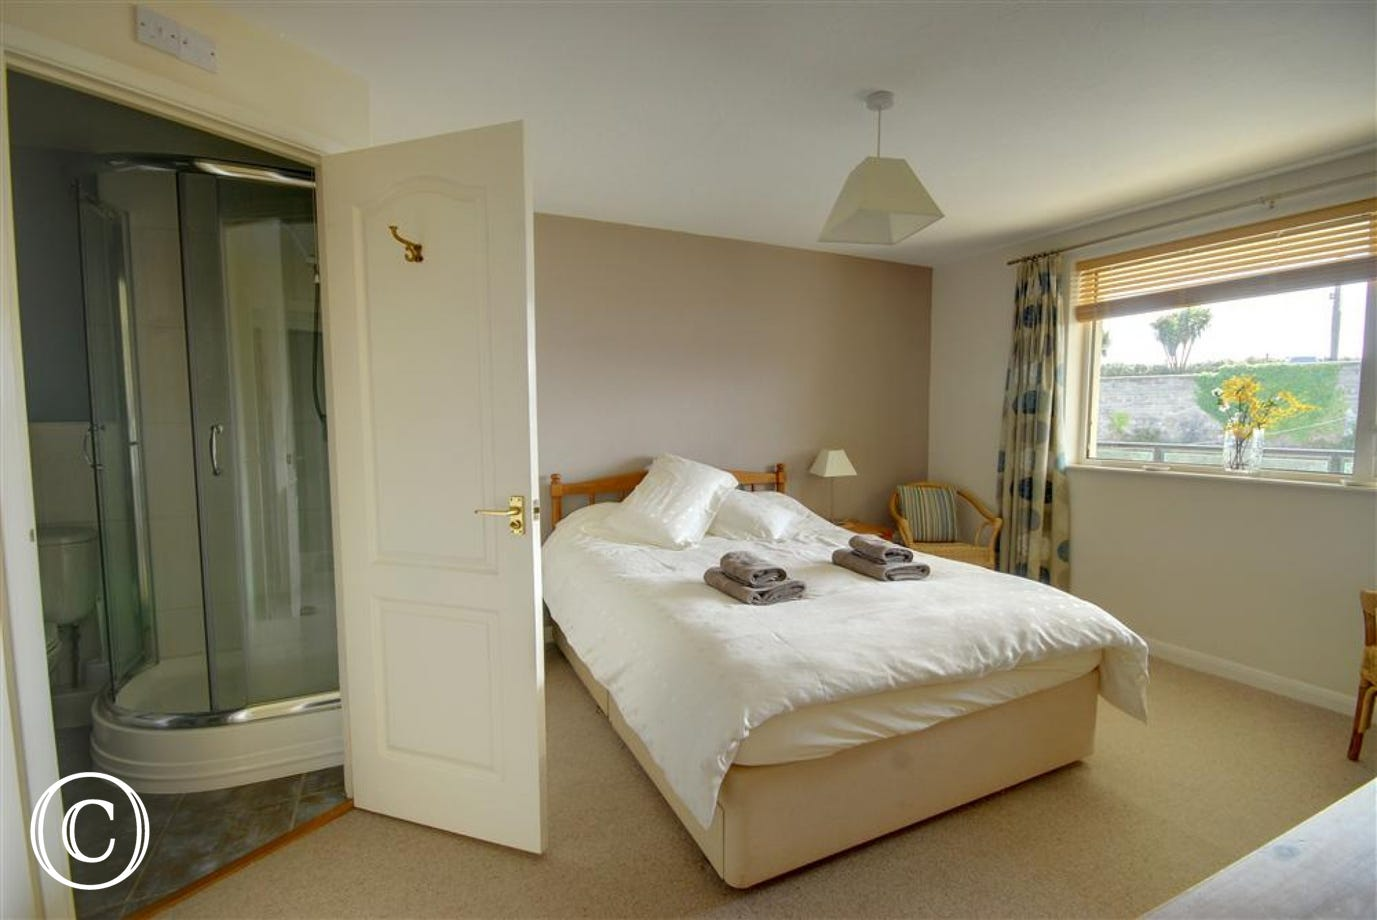 The double bedroom benefits from an ensuite bathroom.